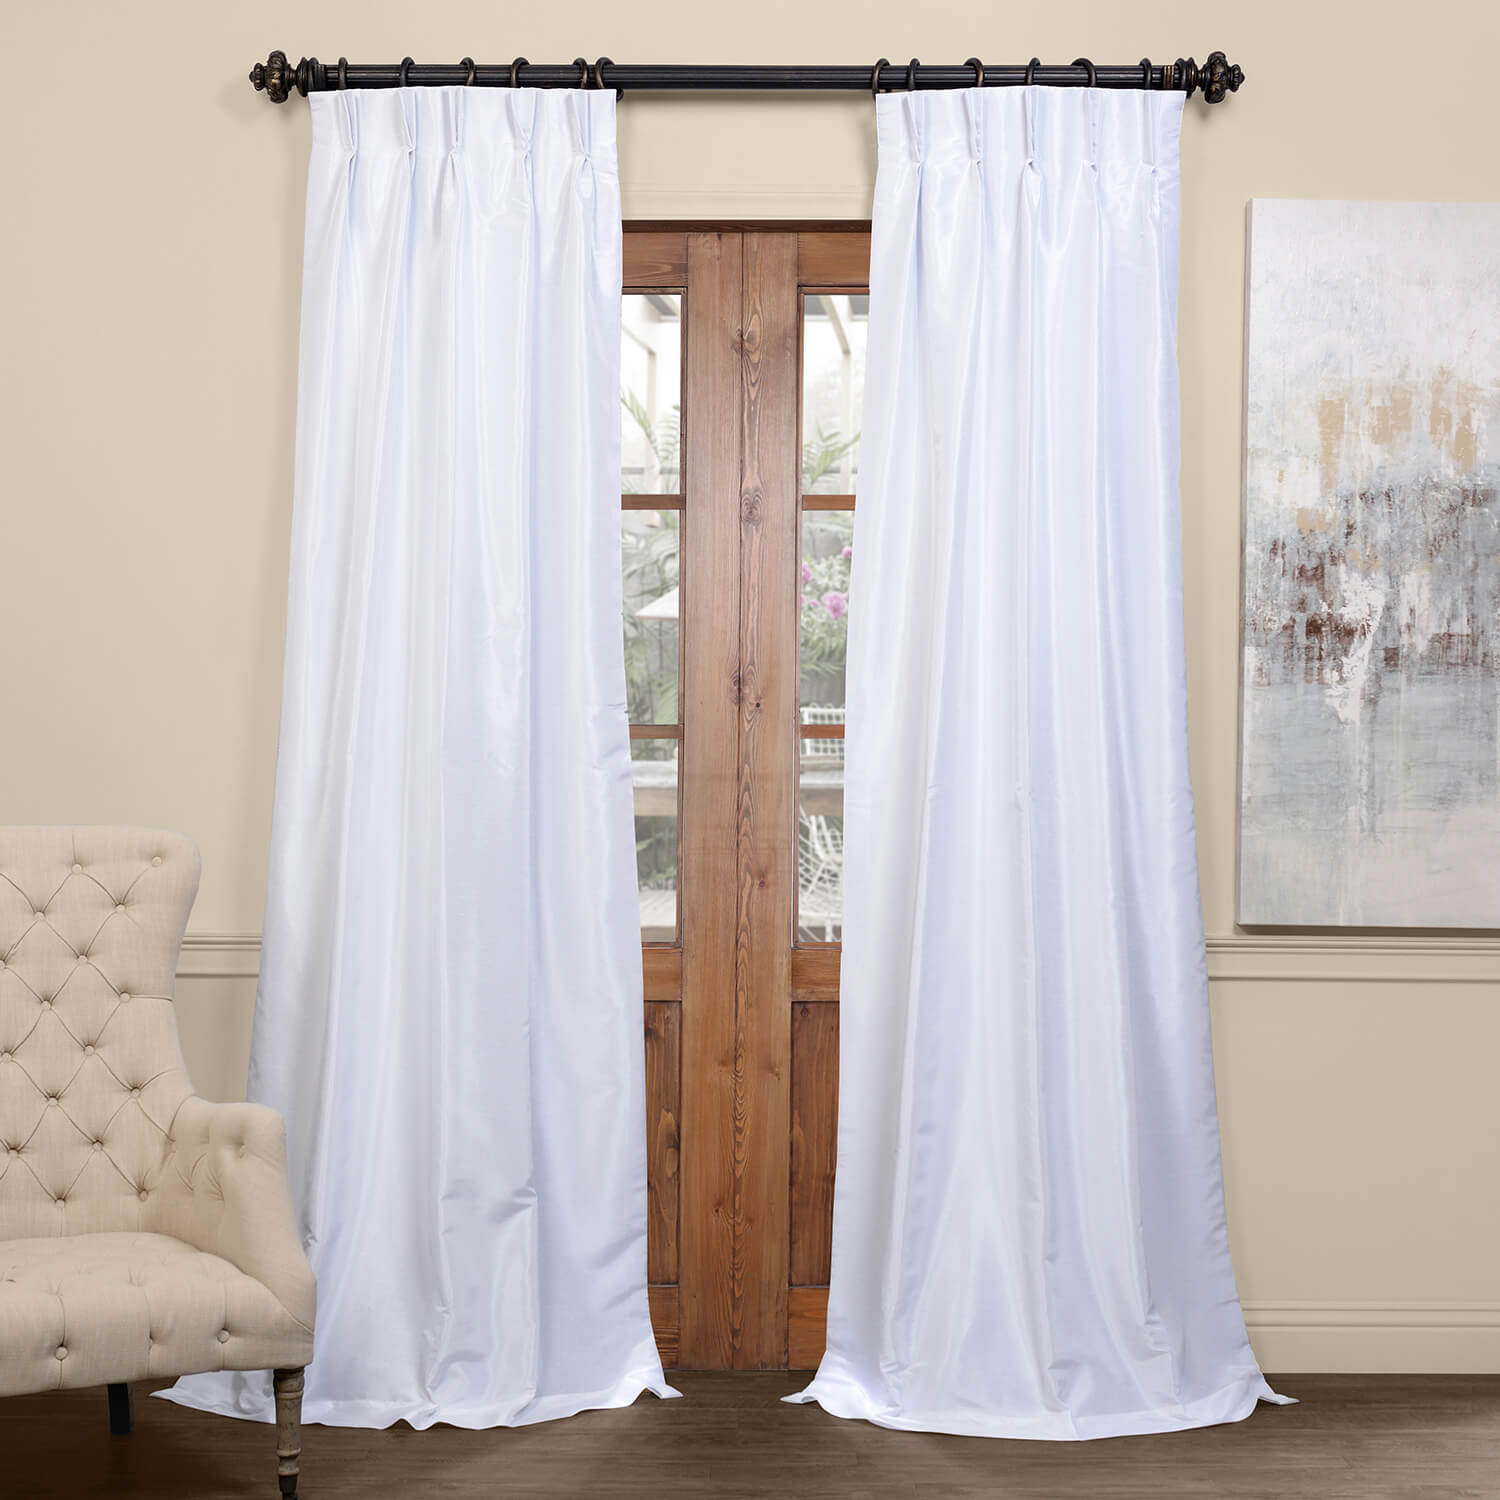 Ice Blackout Vintage Textured Faux Dupioni Pleated Curtain Pertaining To Ice White Vintage Faux Textured Silk Curtain Panels (View 8 of 20)